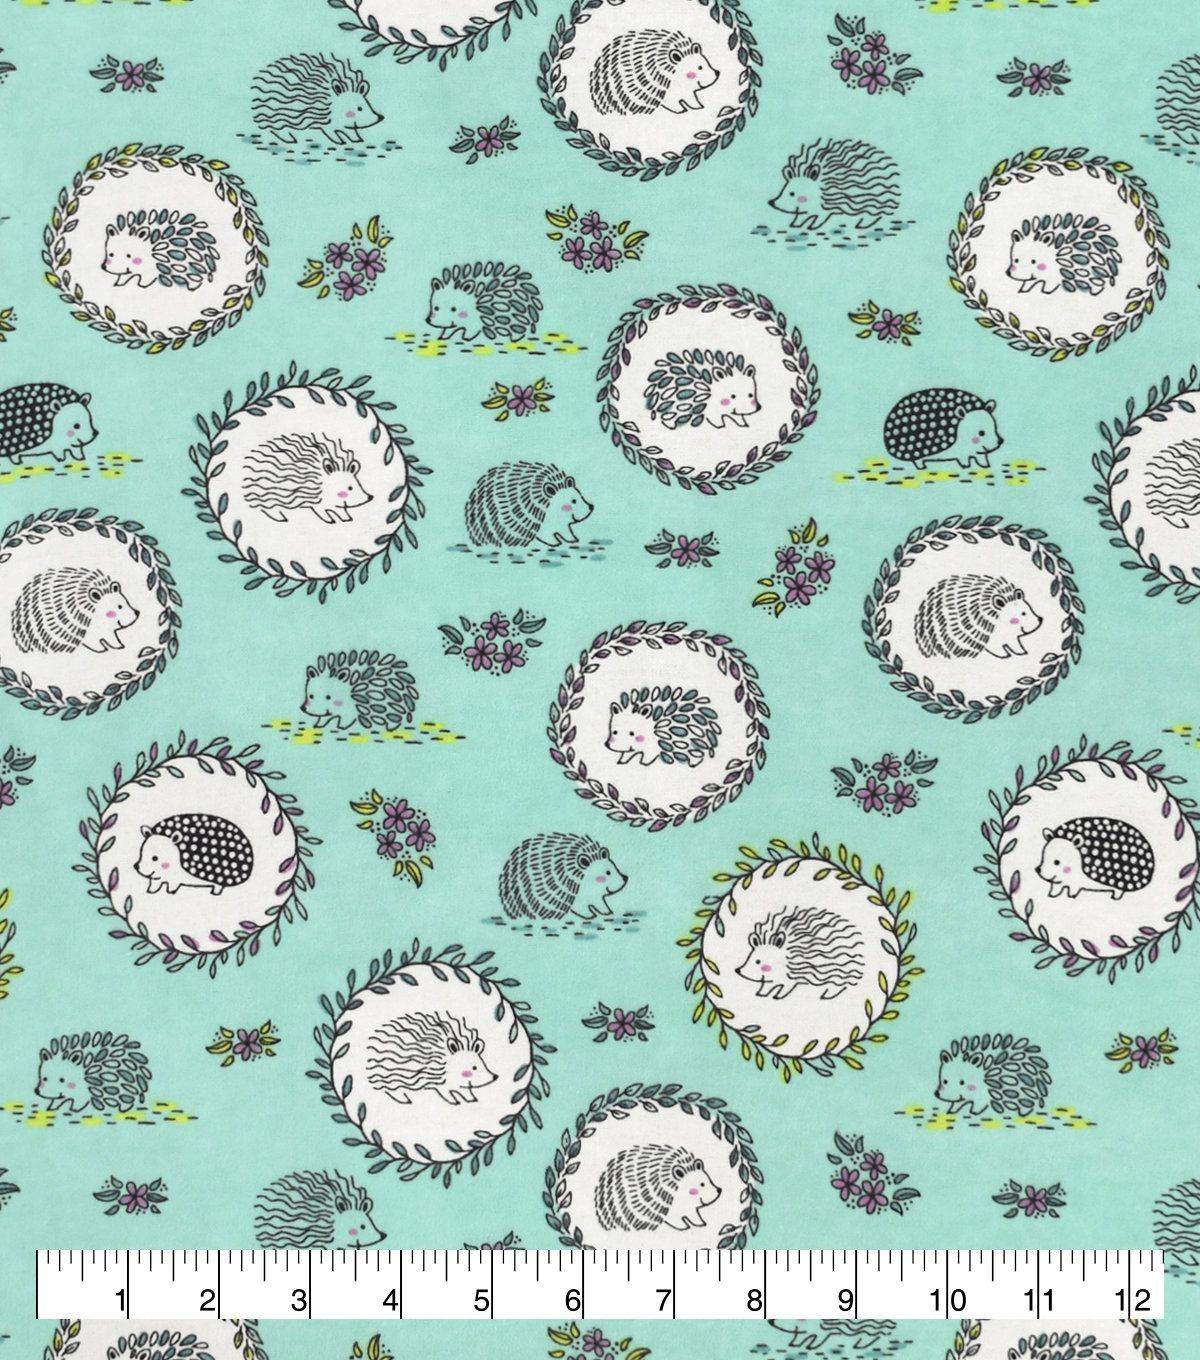 Laurel Hedgehogs Fabric By The Yard 100 Cotton Flannel Fabric Only Additional Length Options Available In 2020 Flannel Fabric Cotton Flannel Fabric